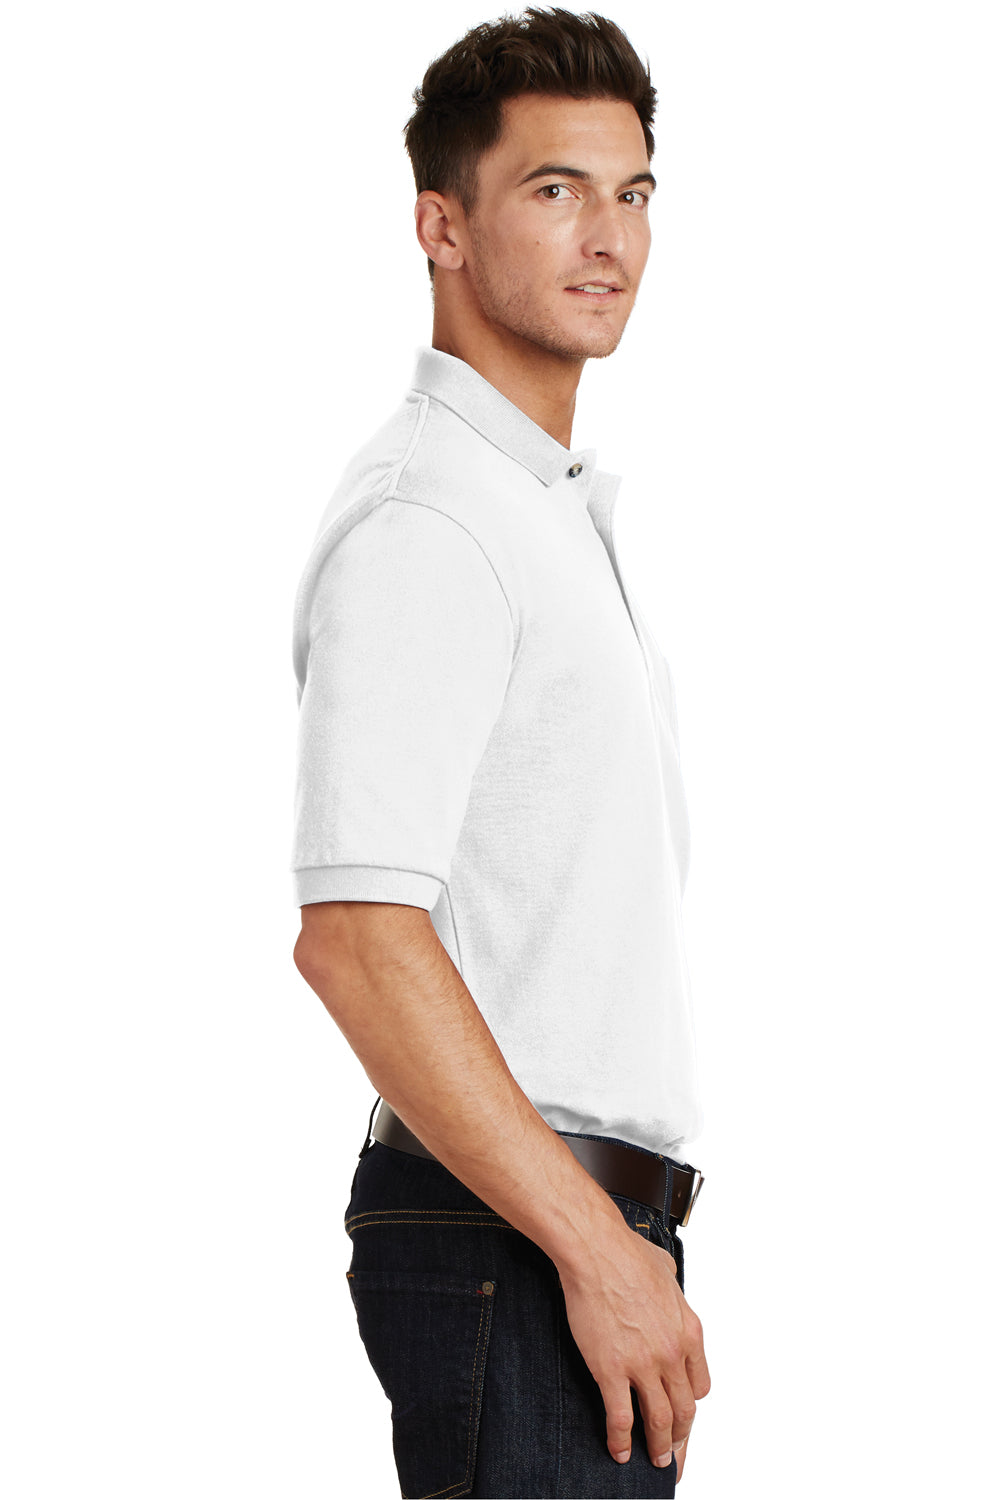 Port Authority K420P Mens Short Sleeve Polo Shirt w/ Pocket White Side